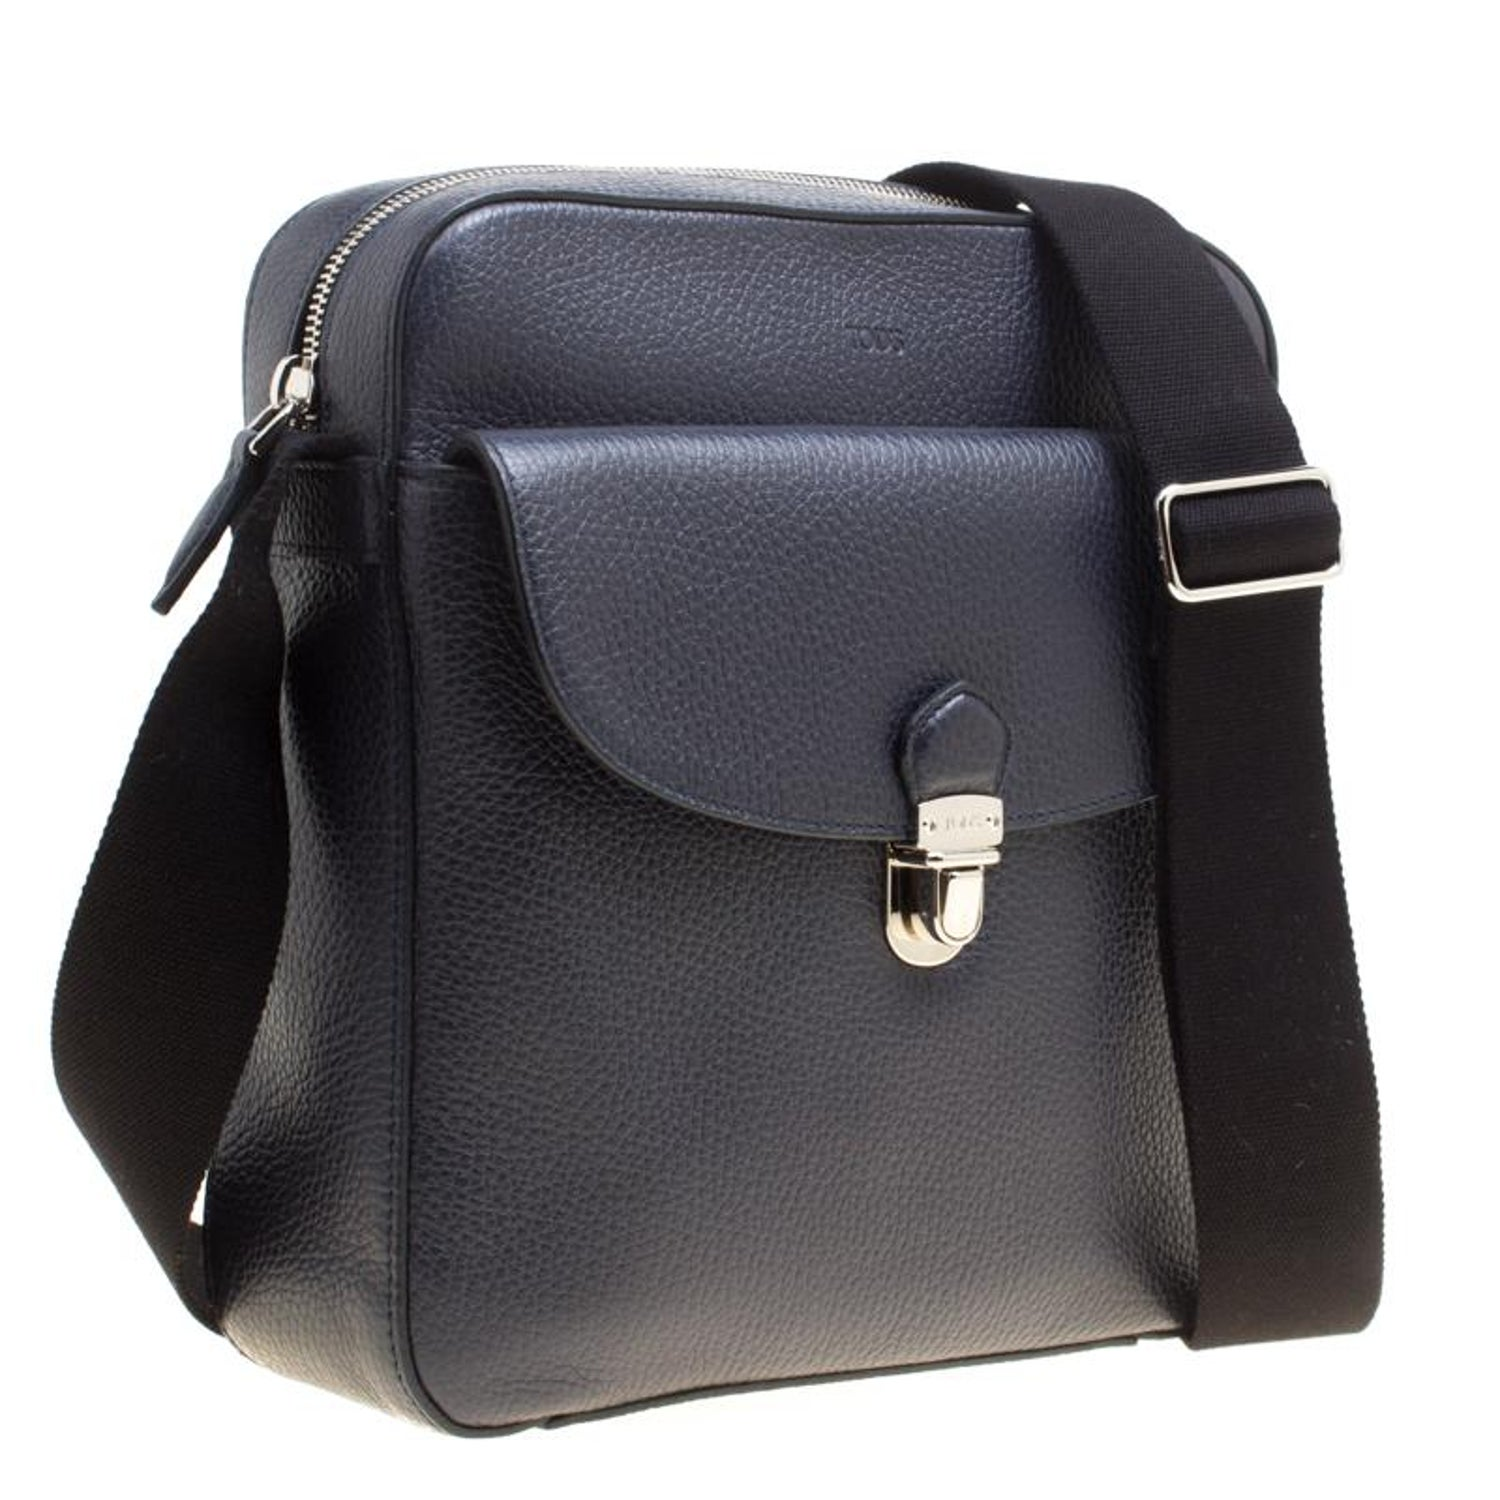 Tod s Navy Blue Leather Reporter Messenger Bag For Sale at 1stdibs 83963badccc3c